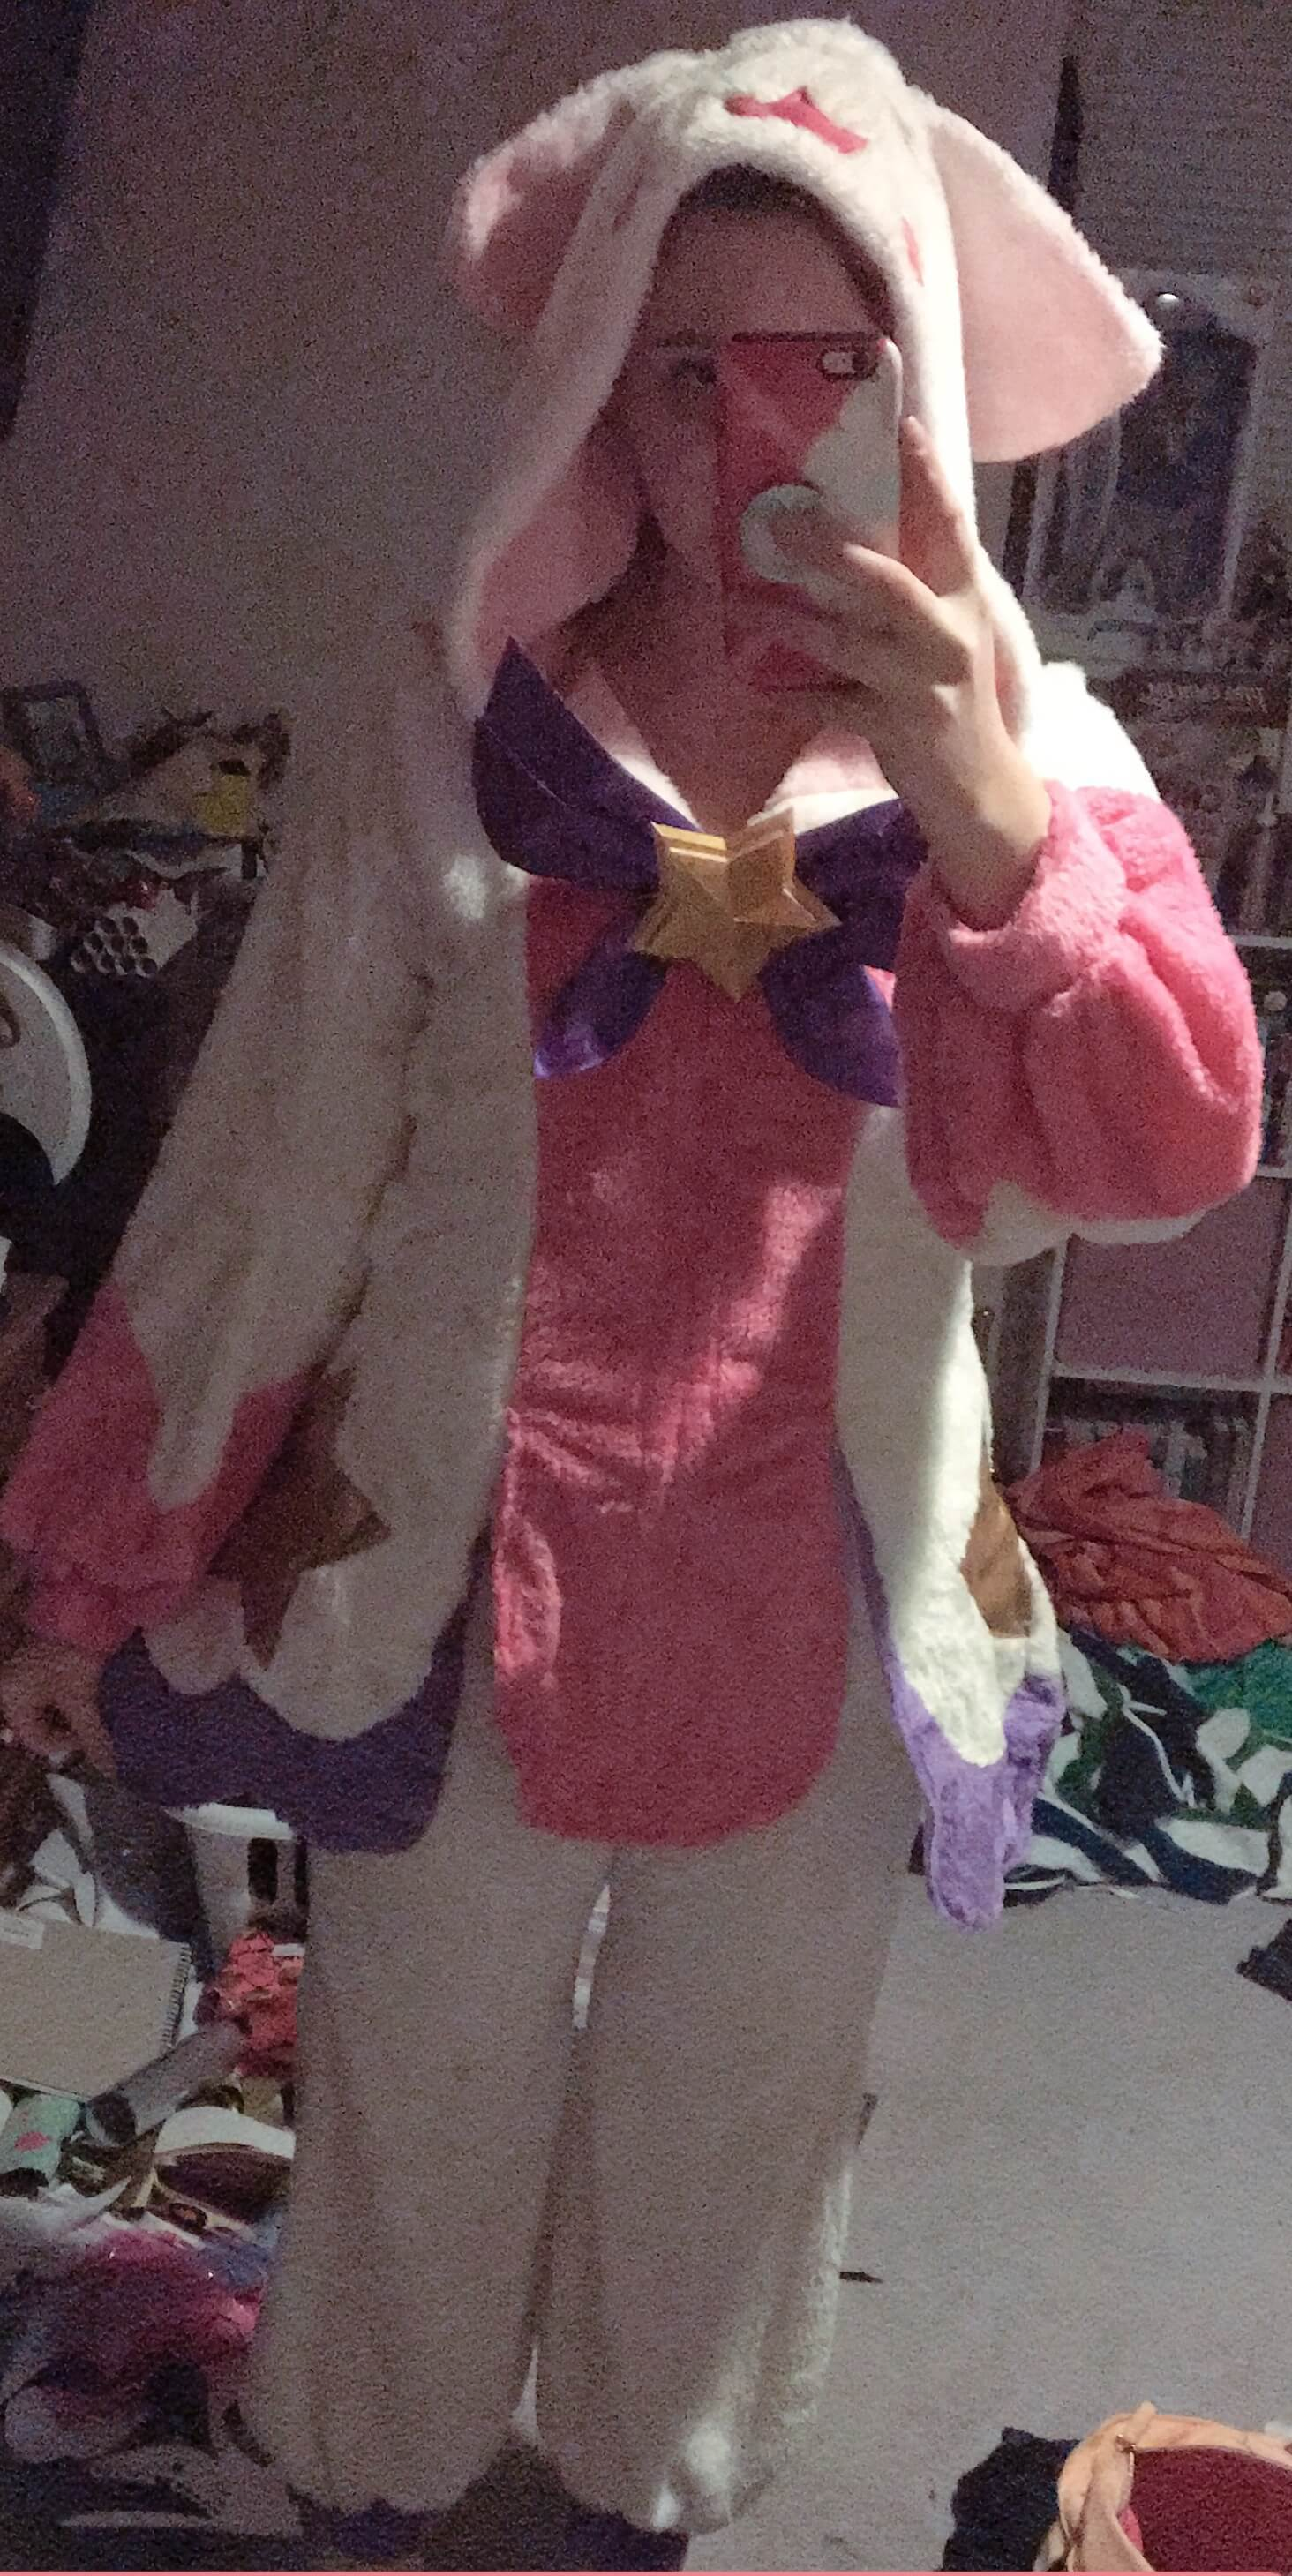 Fits perfectly and is so soft!! This costume is adorable and so comfortable. It came really fast too.